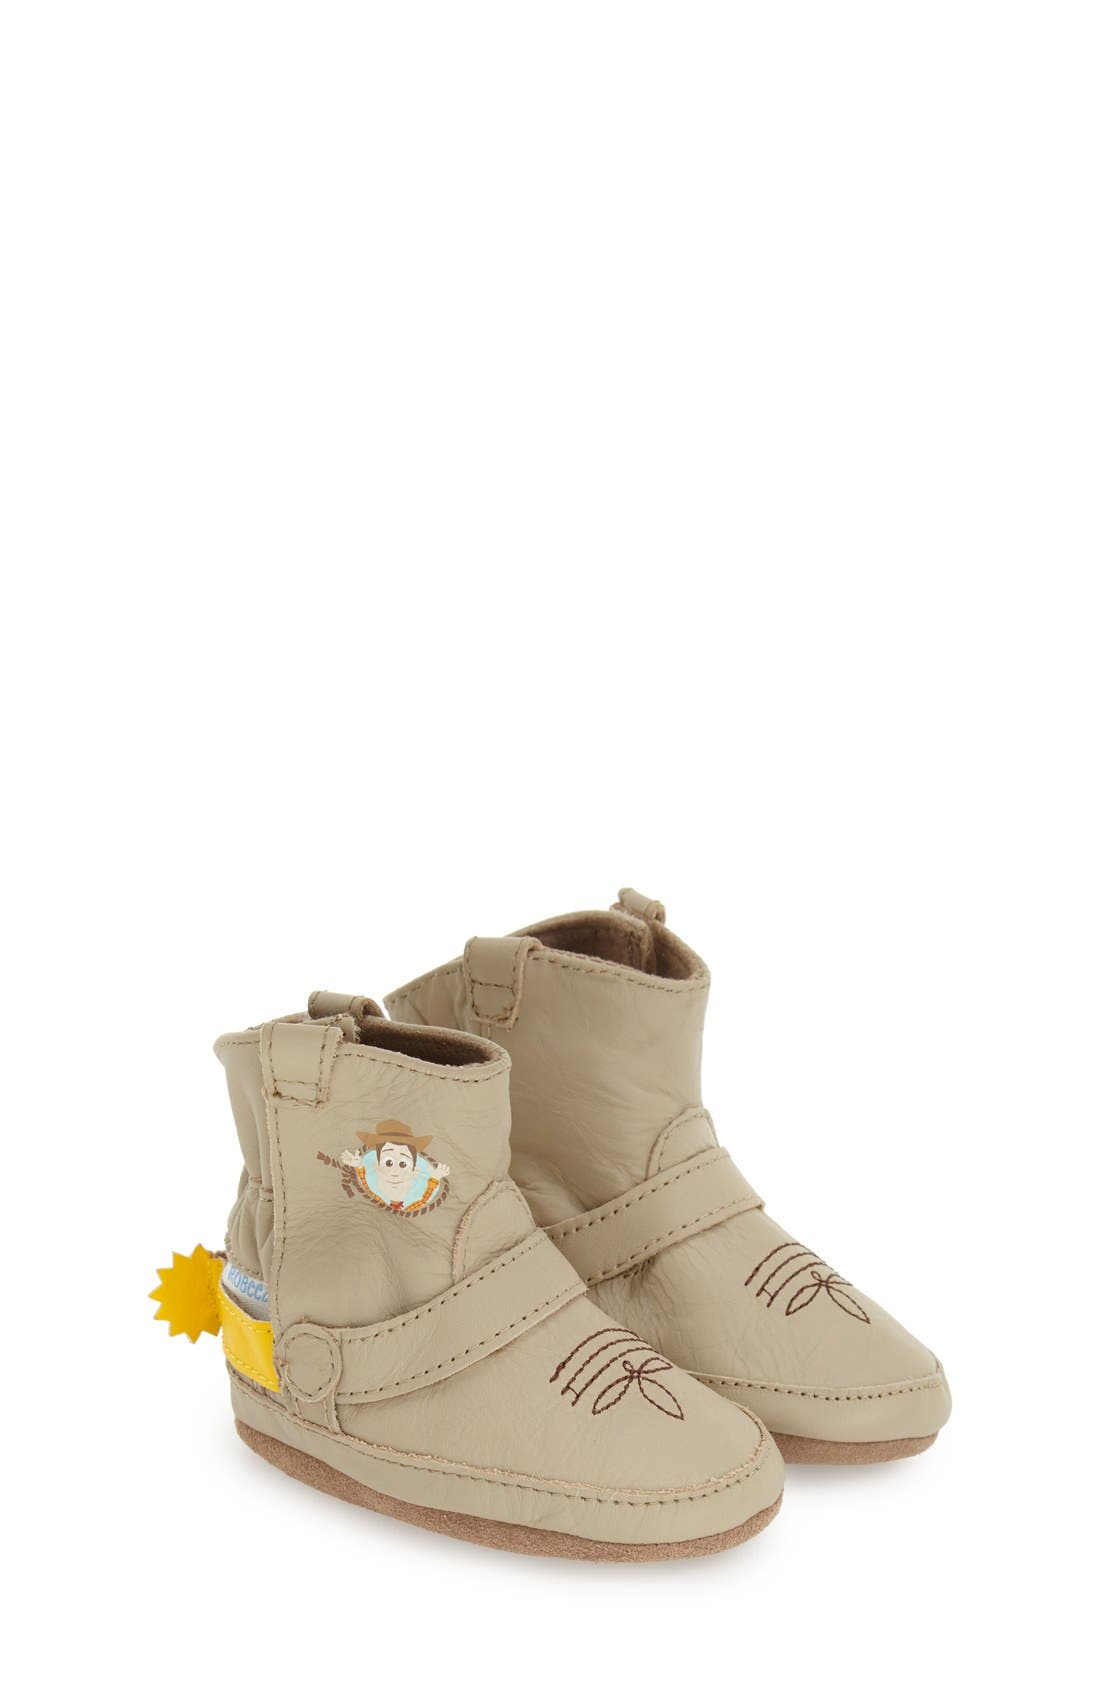 'Disney<sup>®</sup> Woody<sup>®</sup> Bootie' Crib Shoe,                             Main thumbnail 1, color,